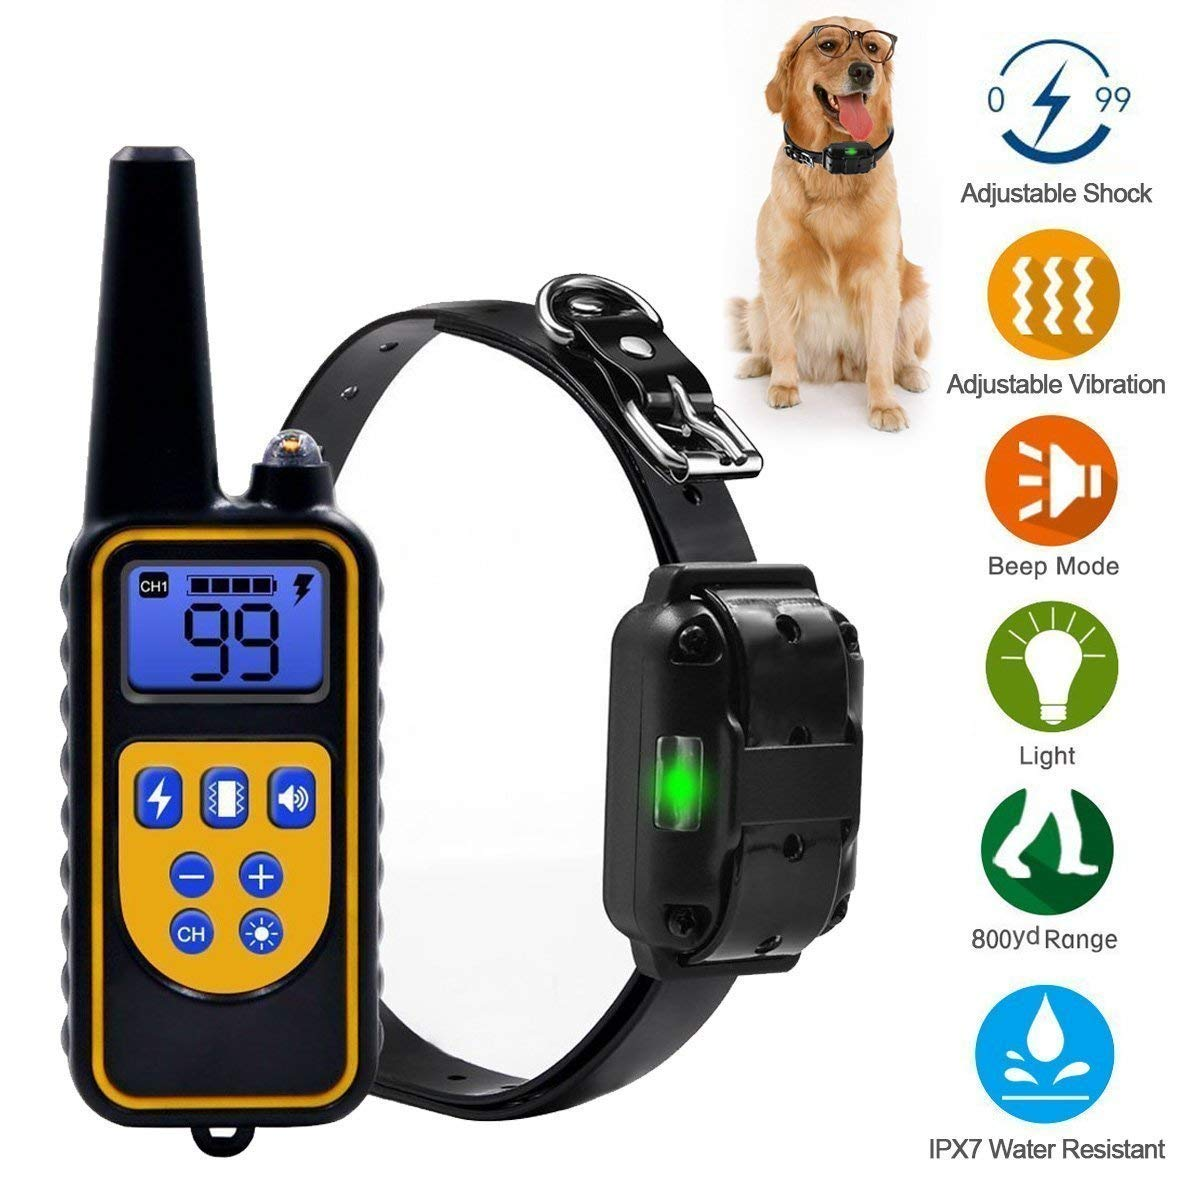 PetDepot Dog training collar with remote Rechargeable Remote Waterproof, Dog Receiver Collar, Pet Dog Training Collar